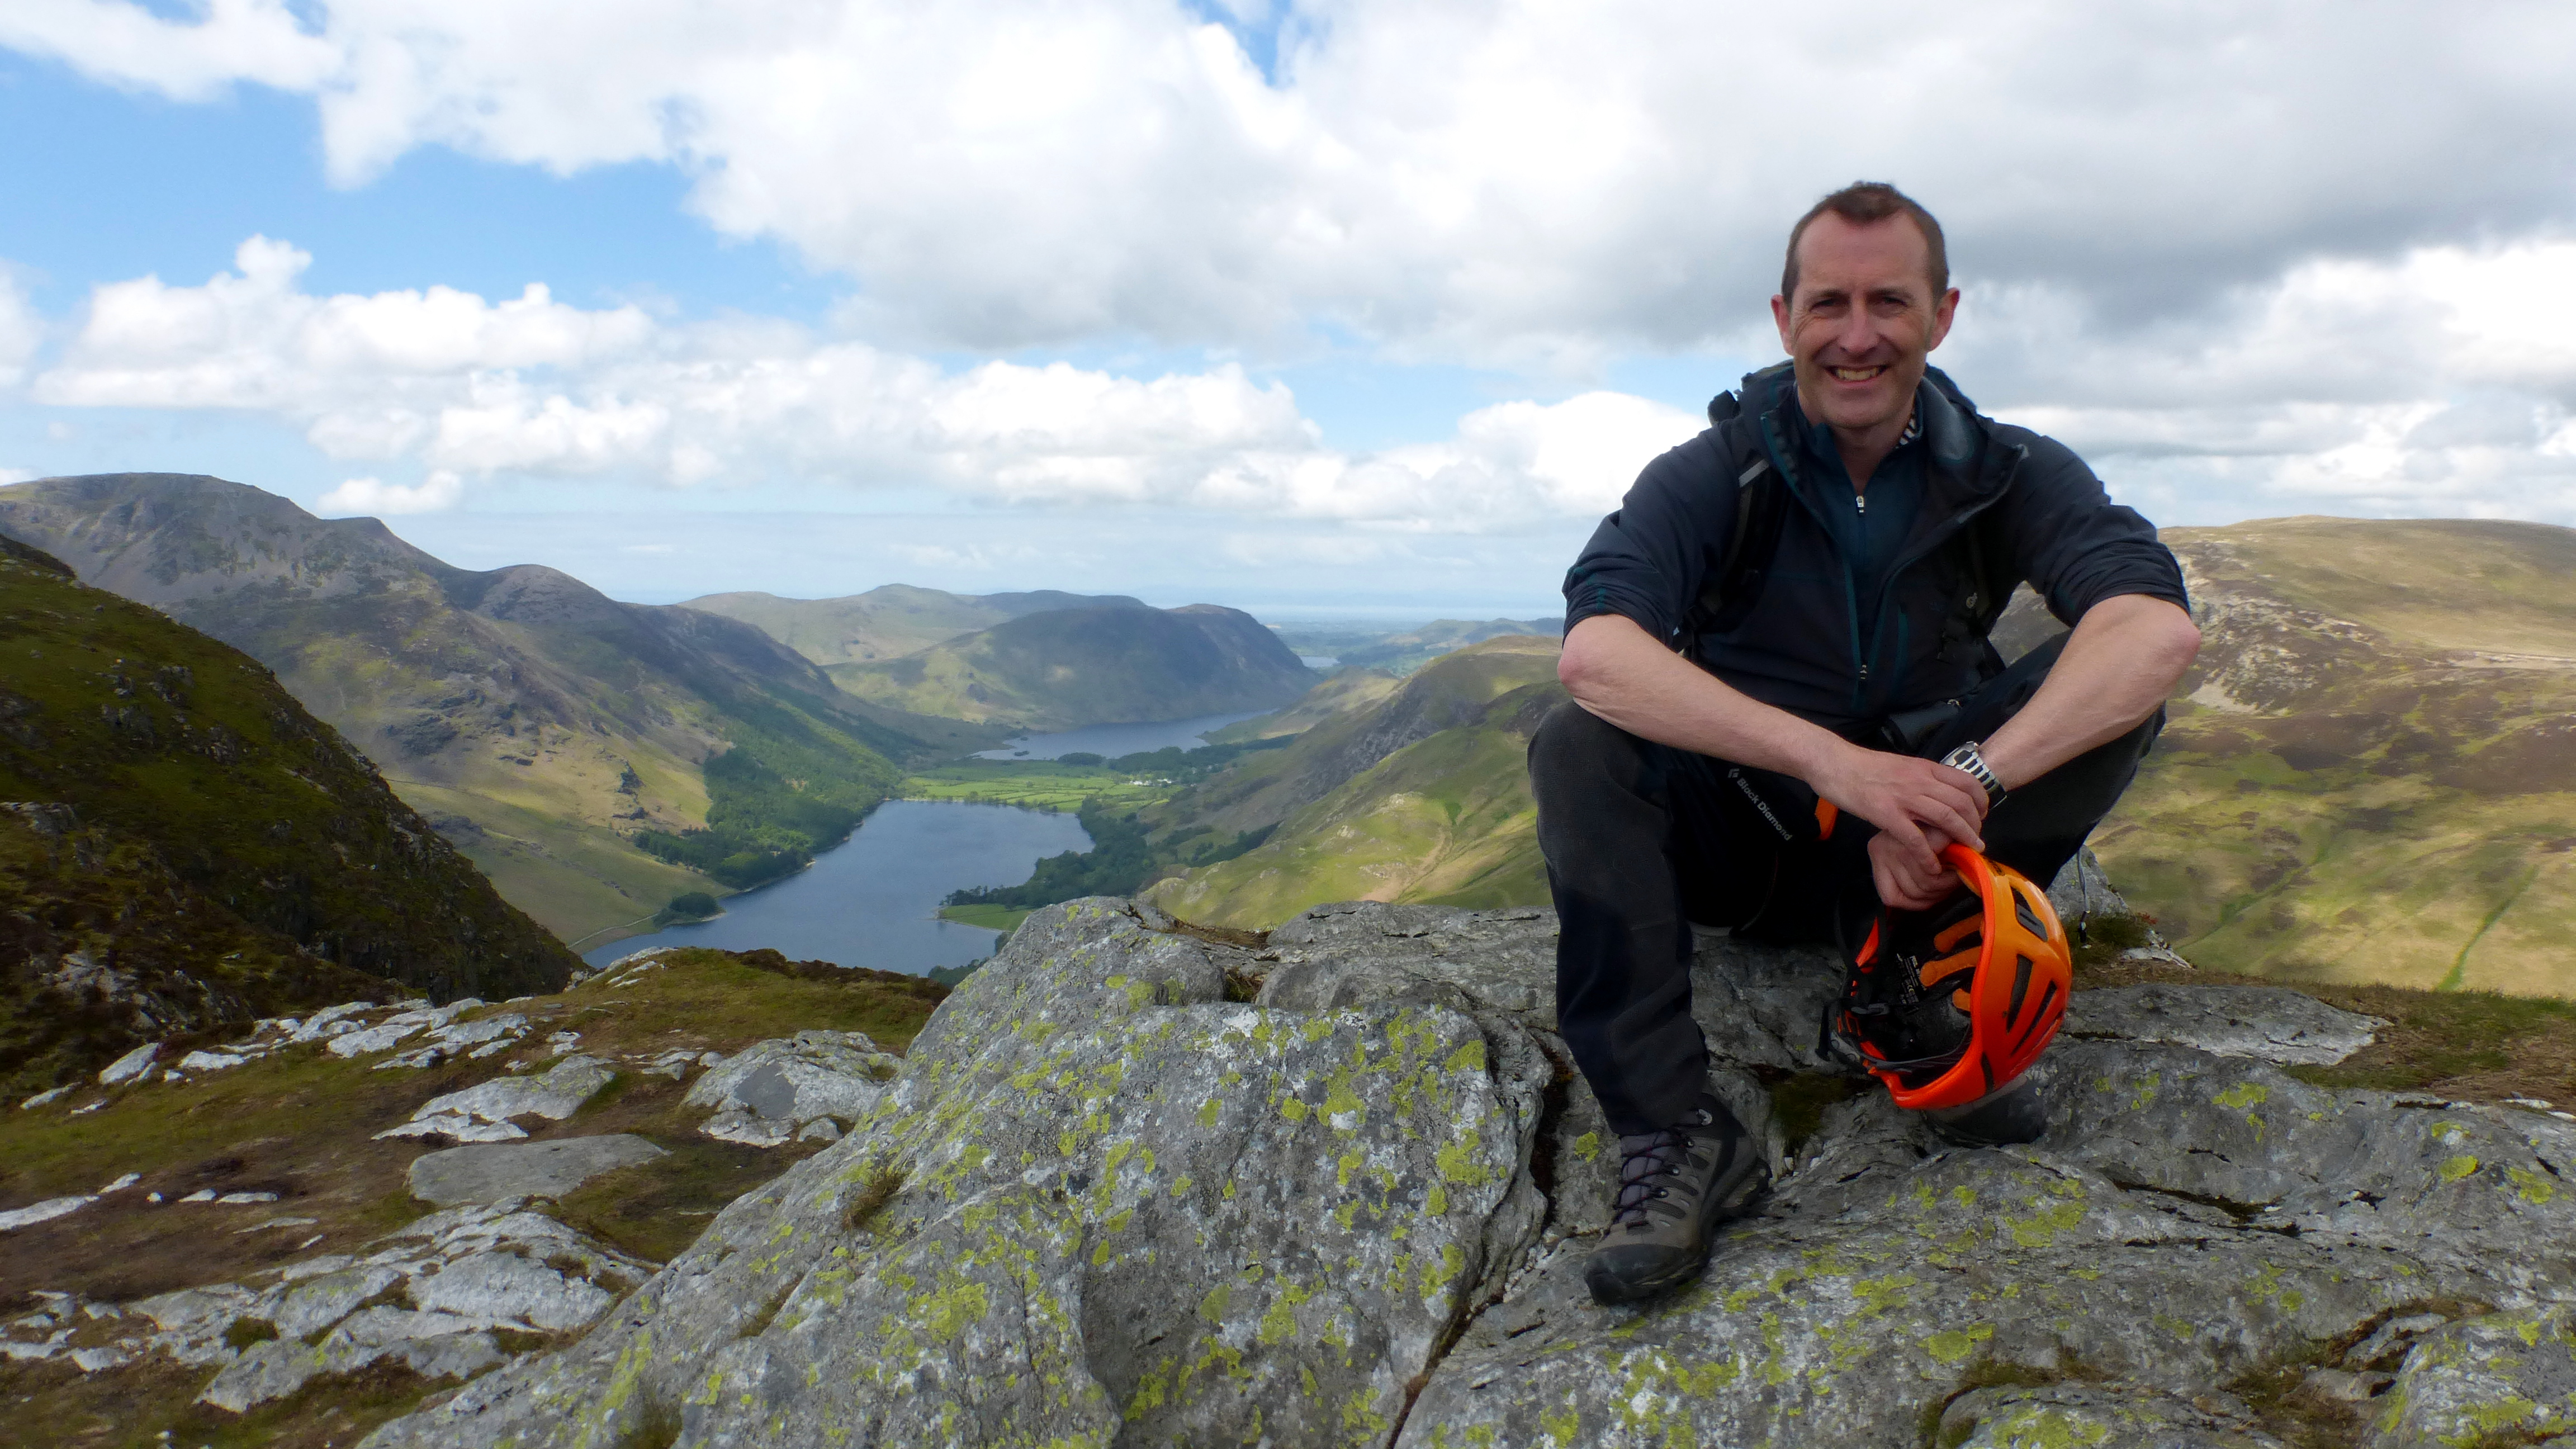 Kelvyn at the top of Fleetwith Pike